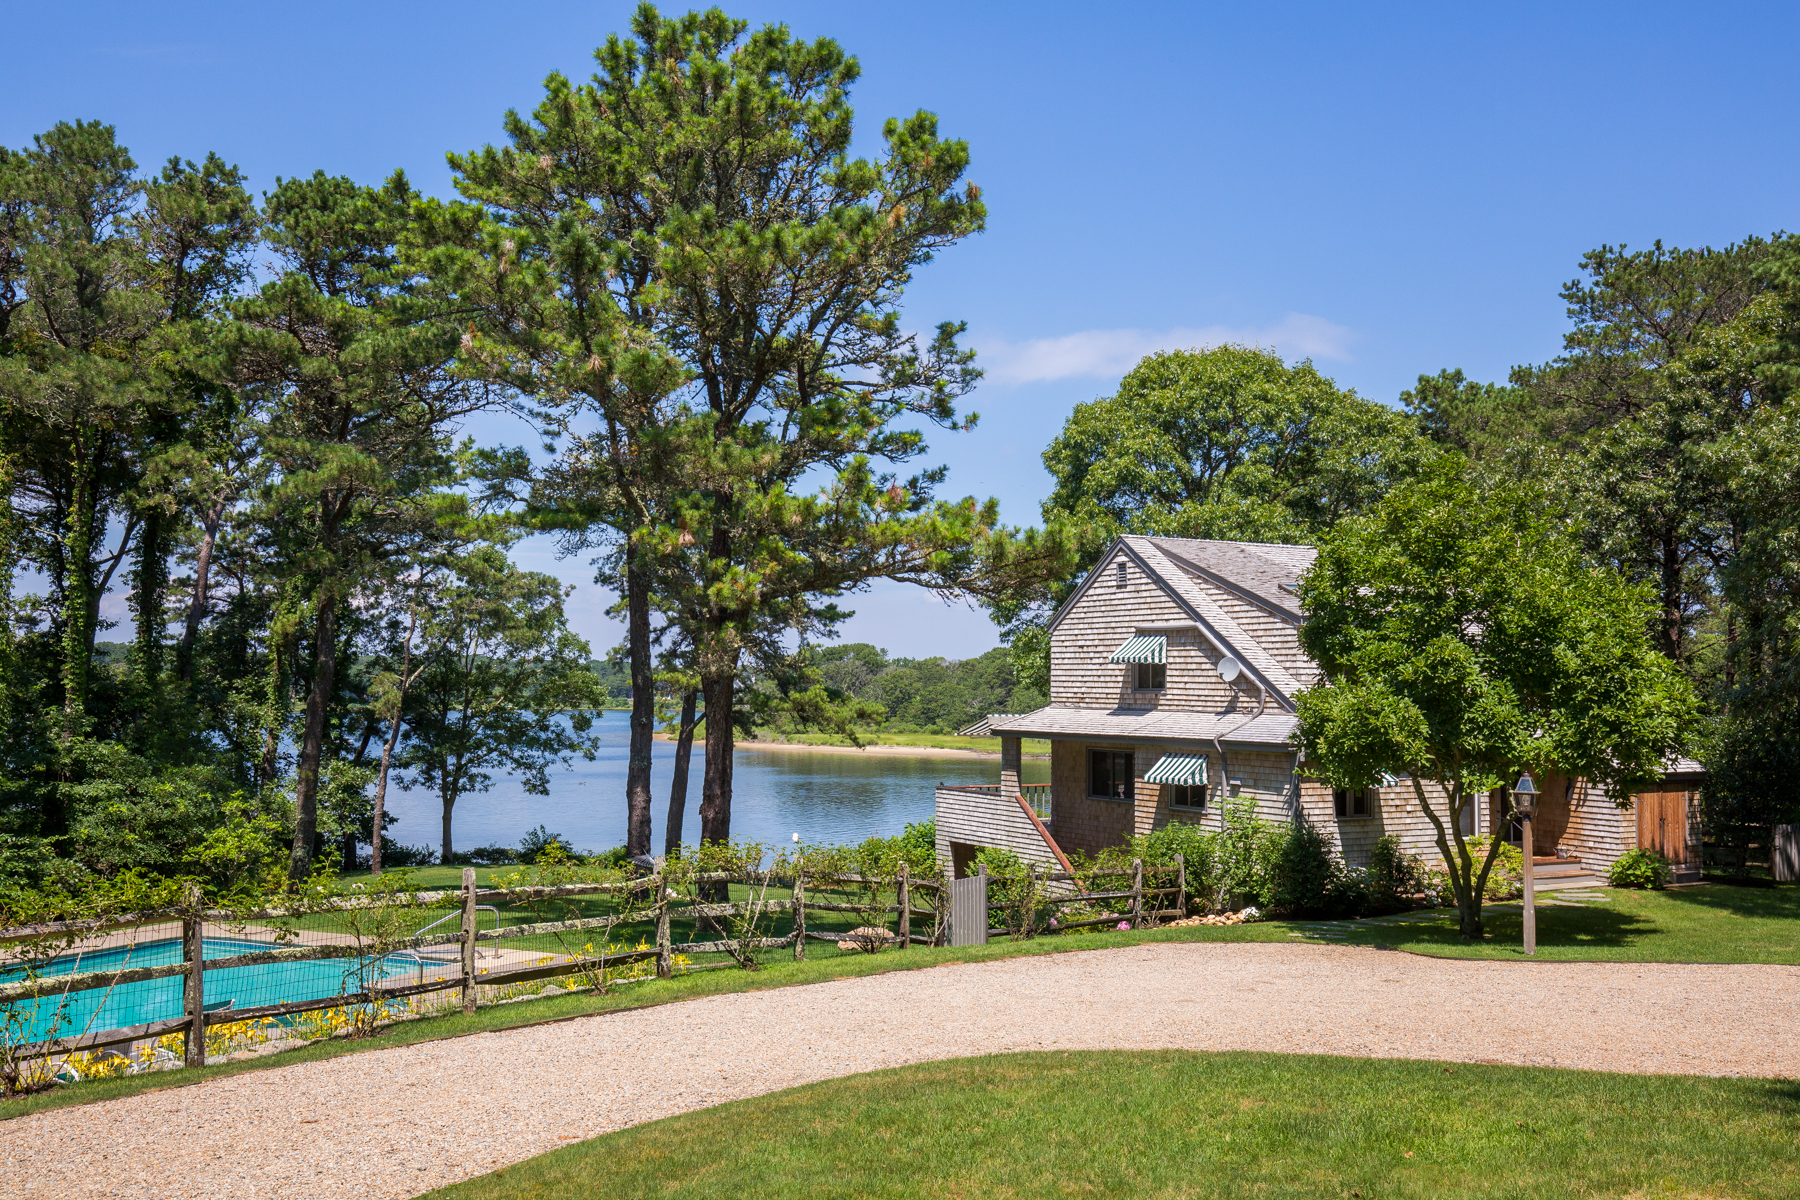 Casa Unifamiliar por un Venta en Picturesque & Private Waterfront Estate 10 Bachelder Avenue Edgartown, Massachusetts 02539 Estados Unidos